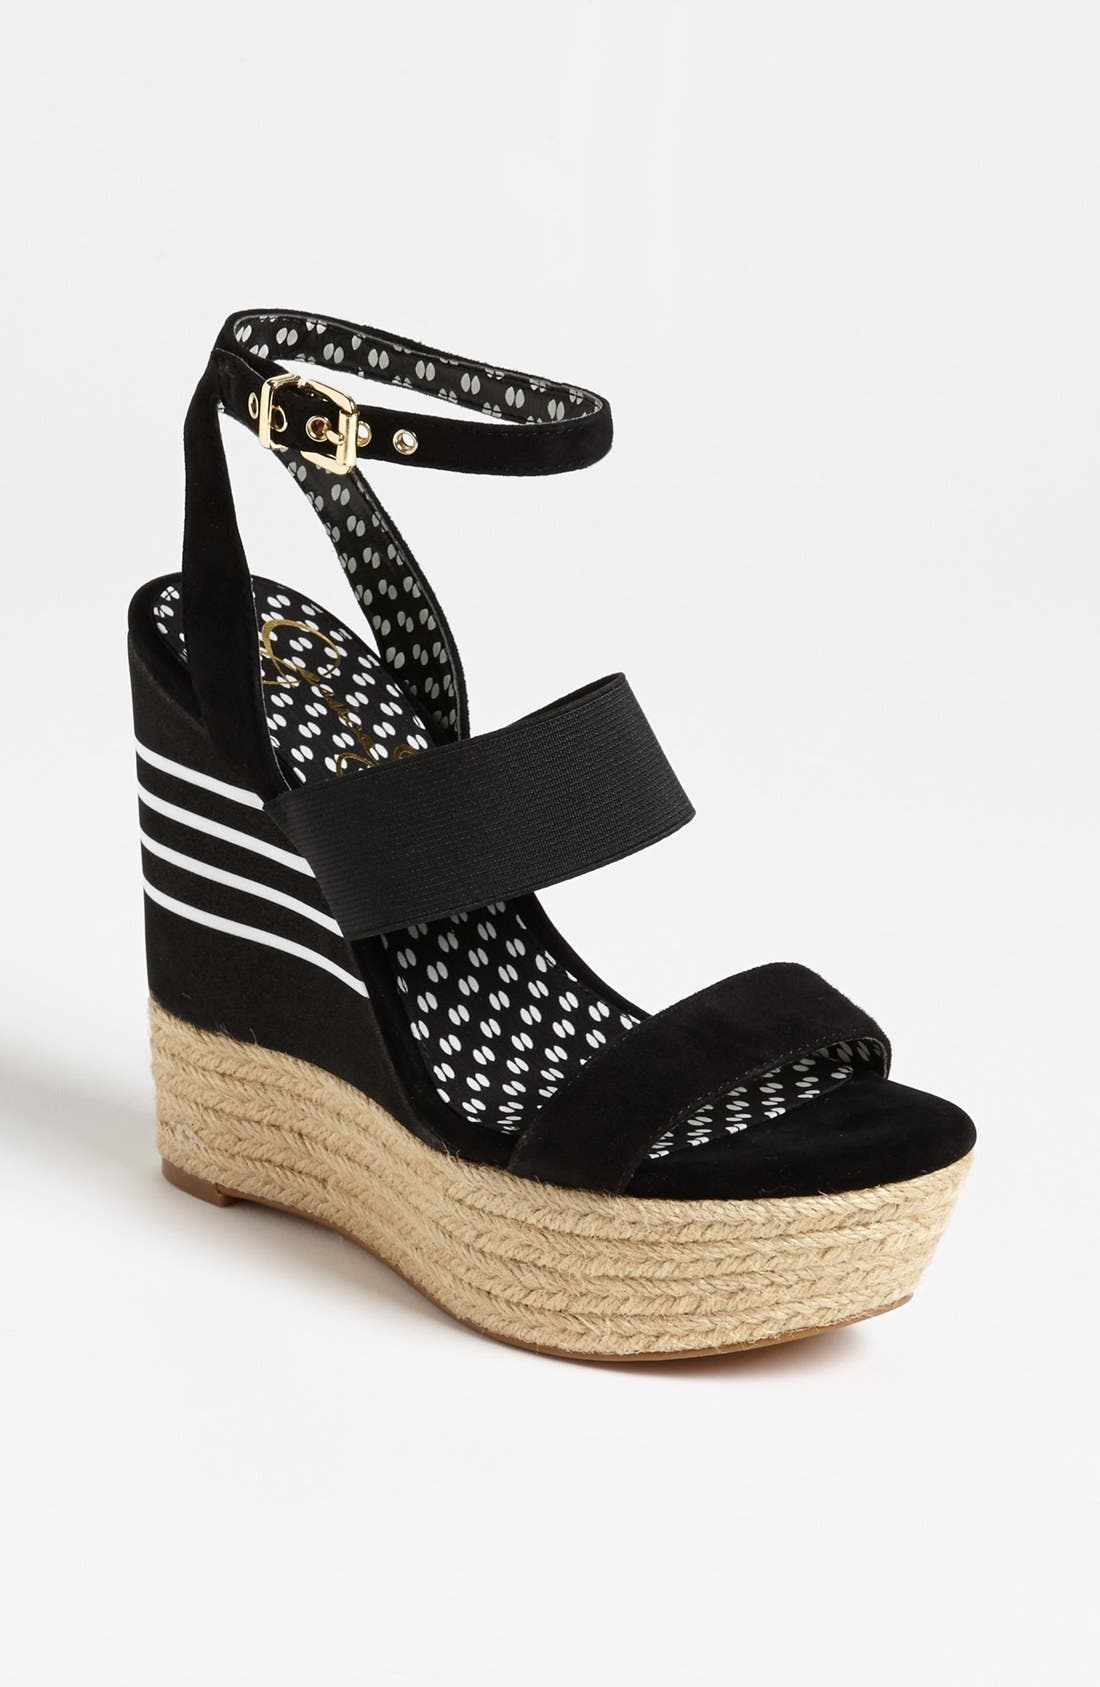 Alternate Image 1 Selected - Jessica Simpson 'Cosset' Sandal